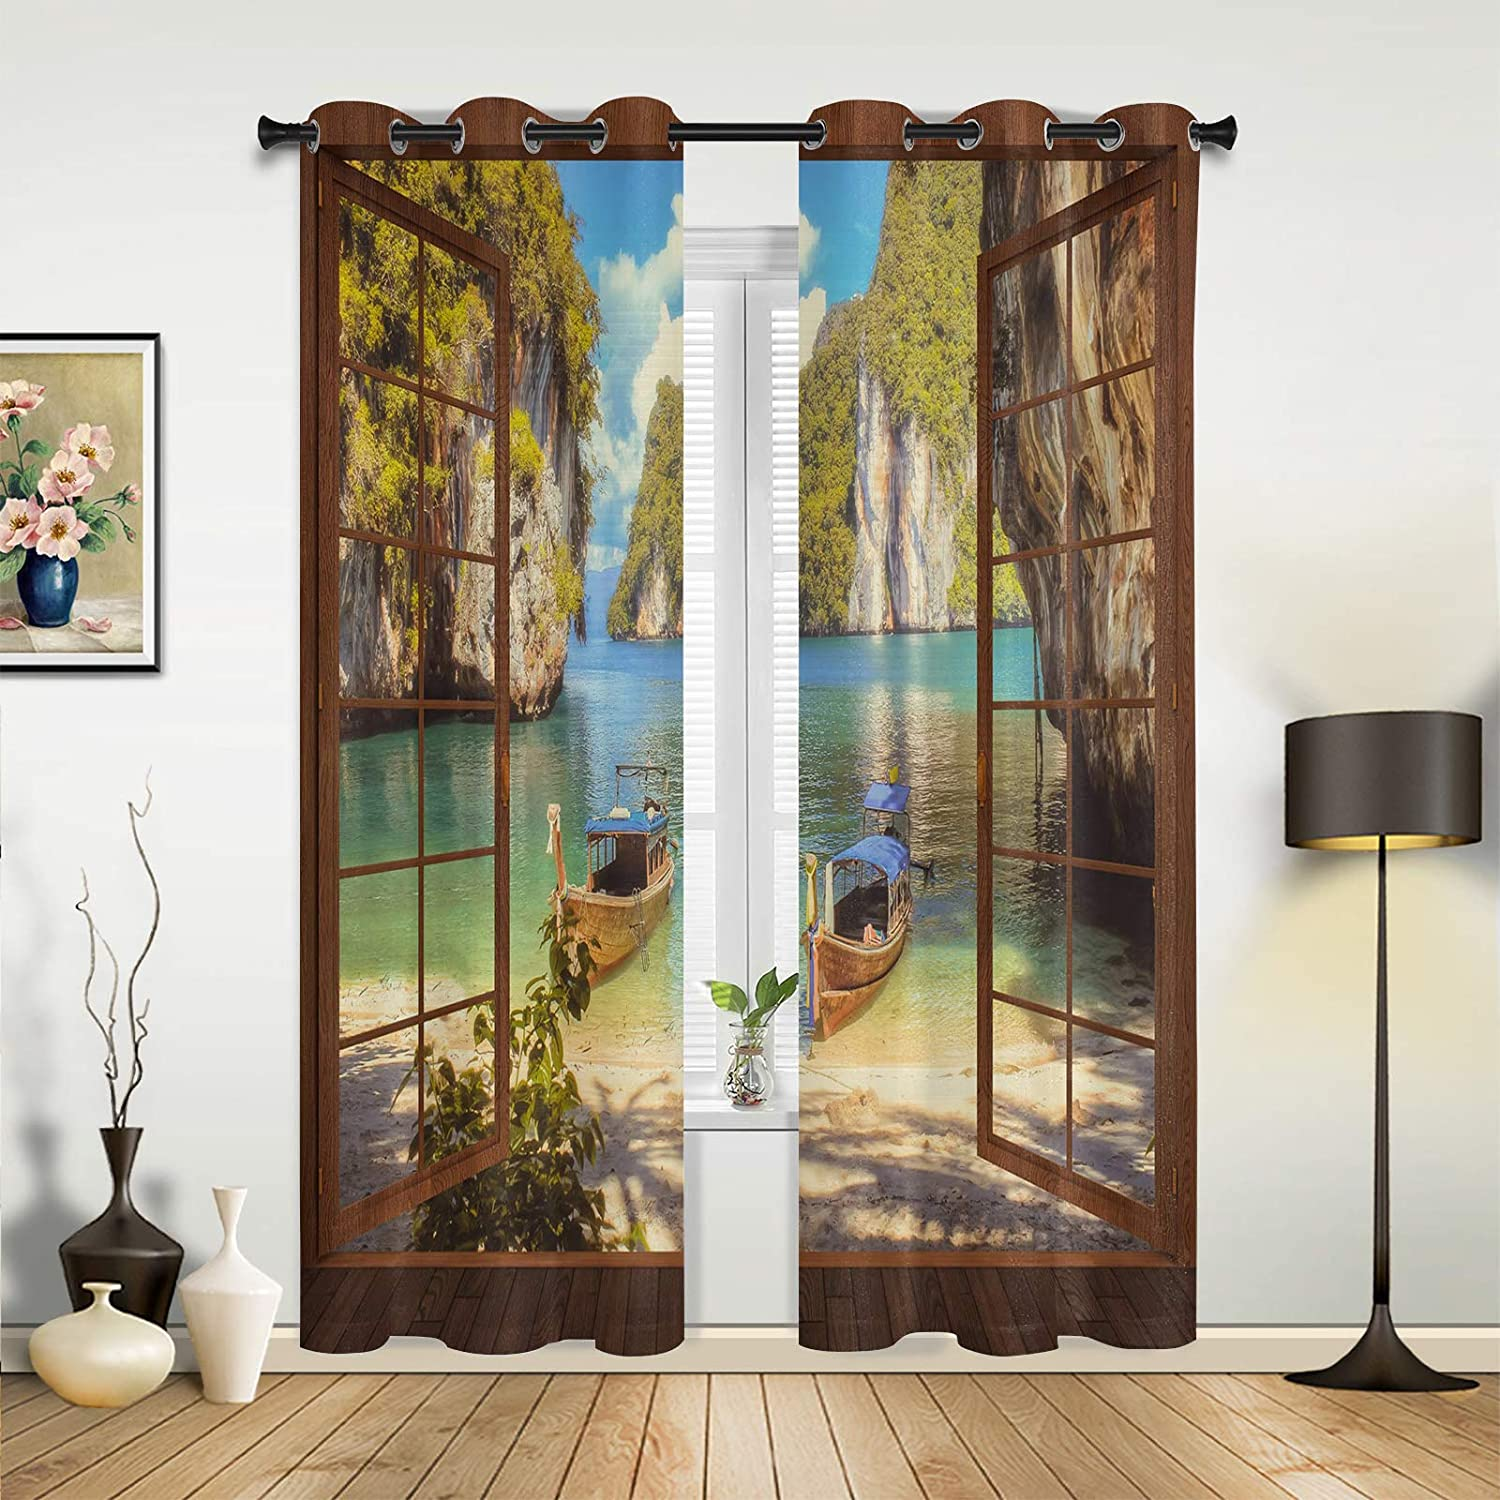 Window Sheer Curtains Topics on TV Mail order cheap for Bedroom Living Beach Dreamy Room Canyo